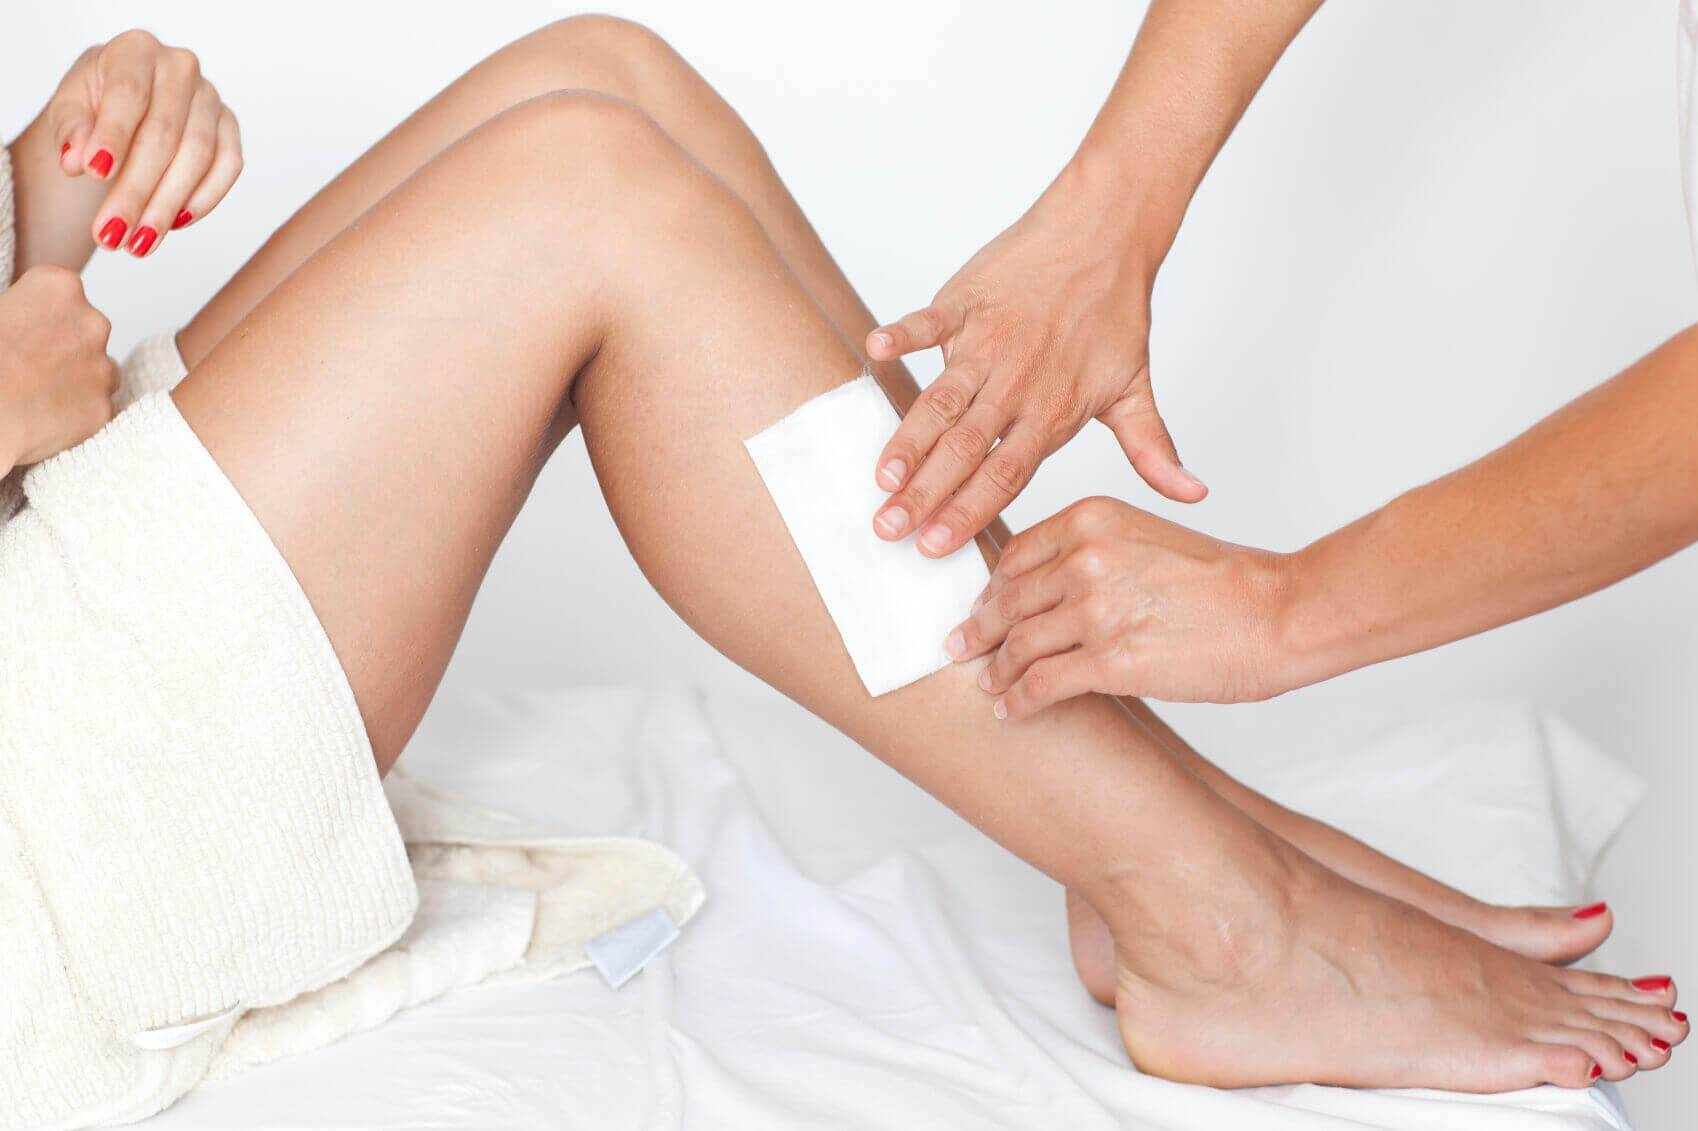 Easy To-Use At Home Hair Removal Solution